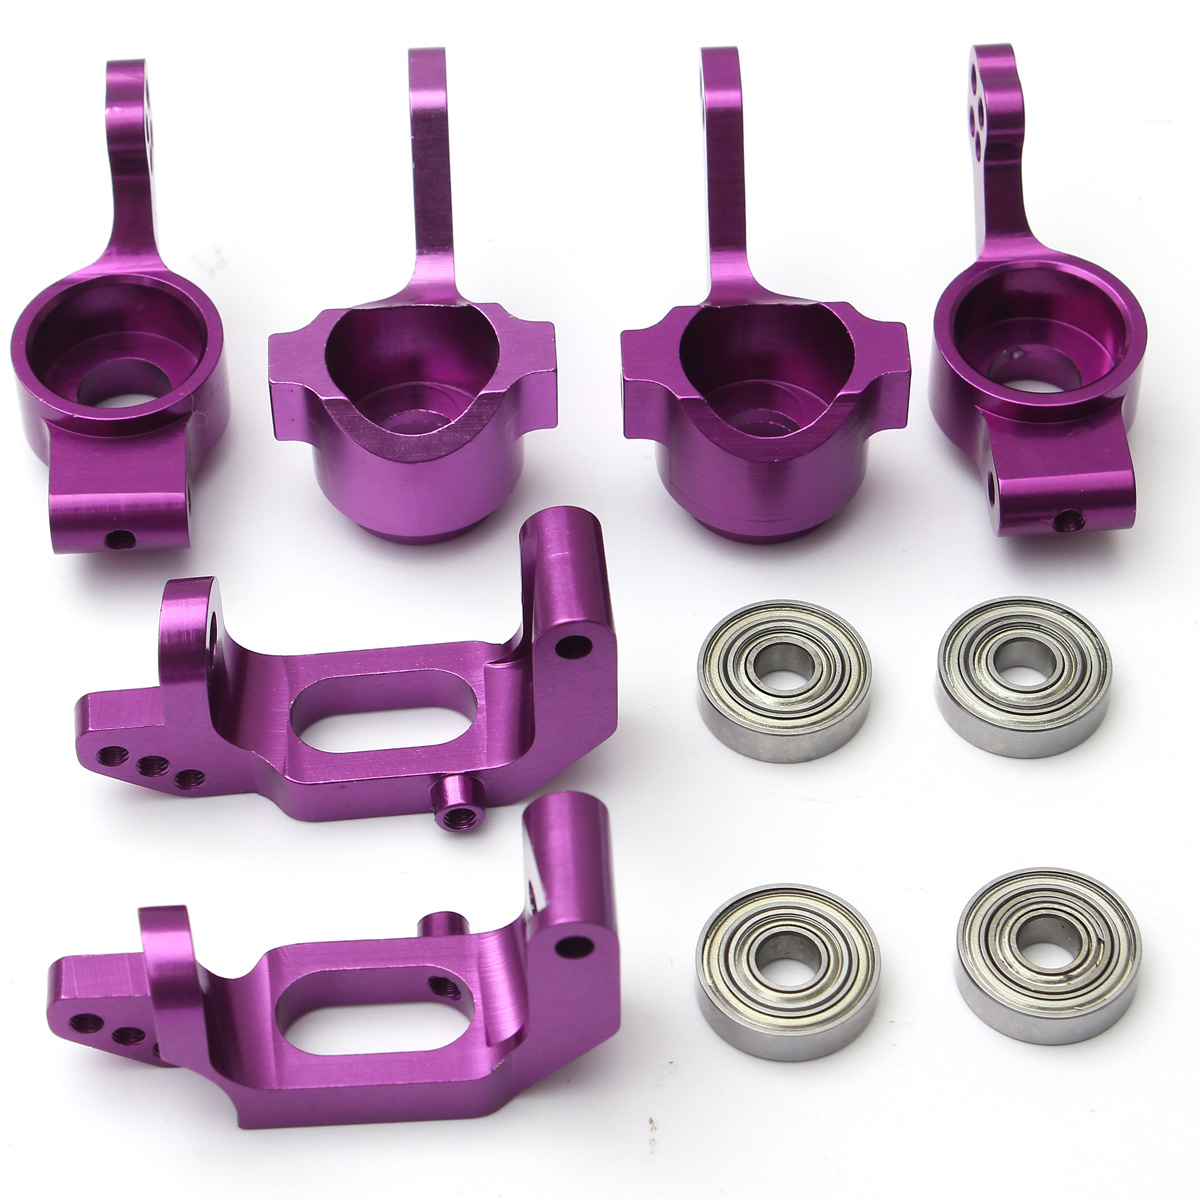 Upgrade Spare Parts For HSP Redcat 1:10 RC Racing Buggy Truck Truggy Car